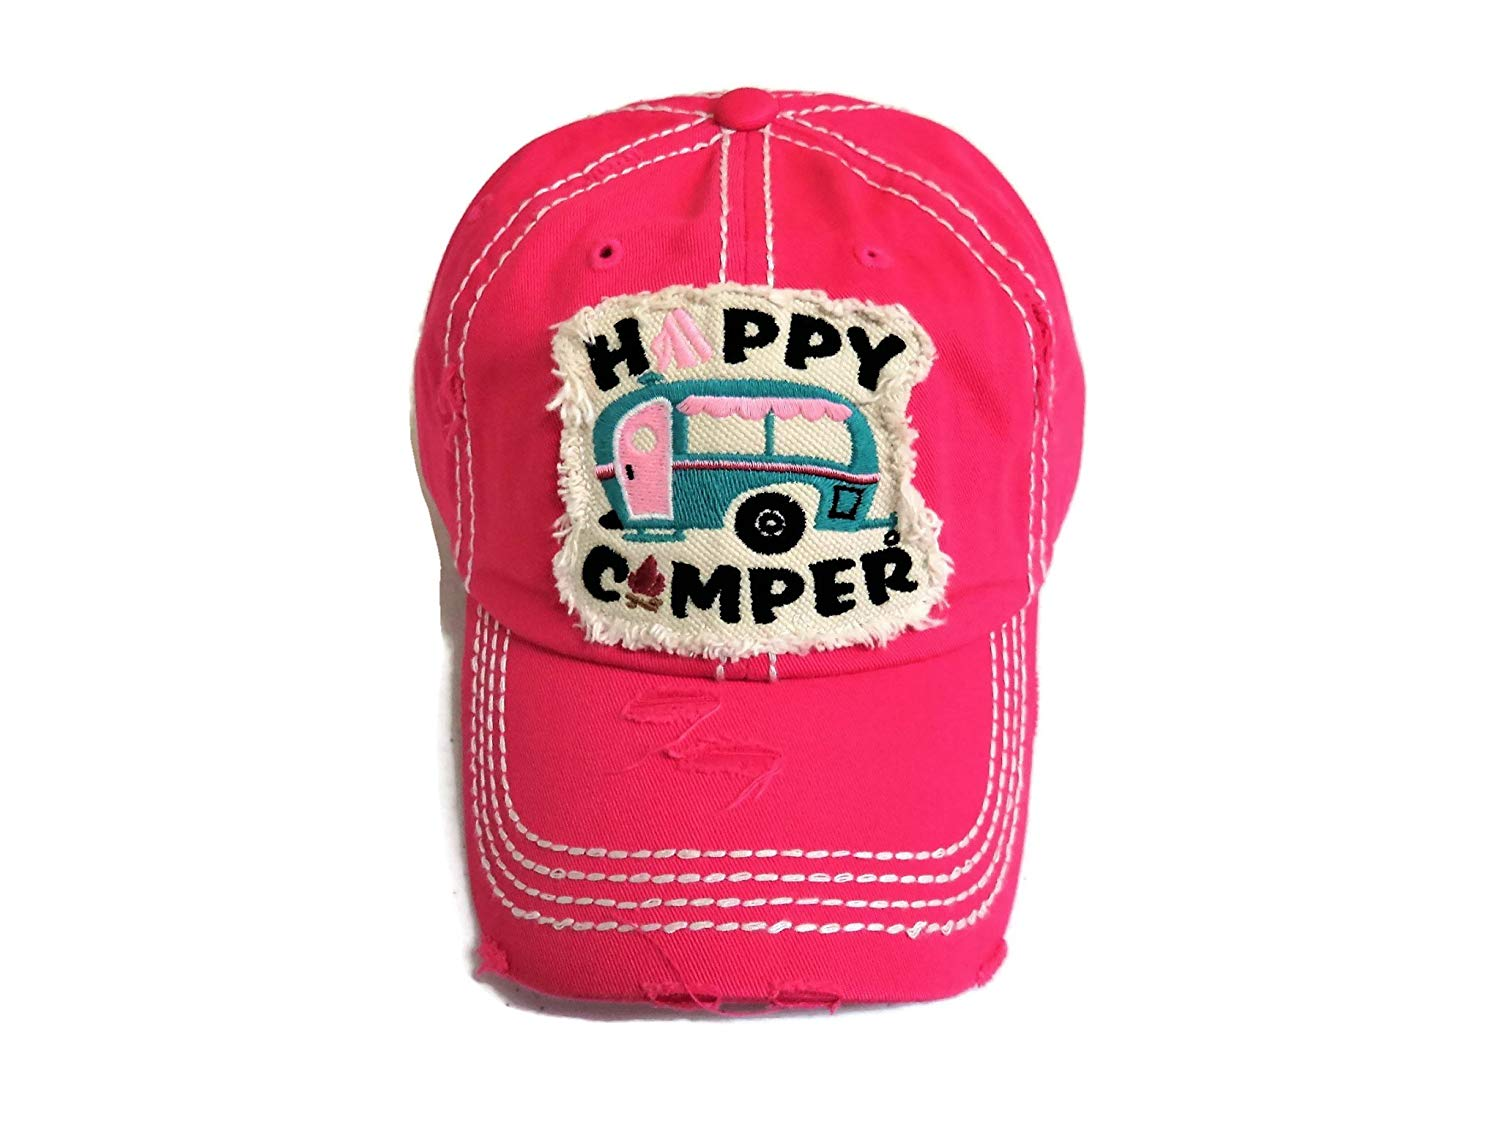 621b375bbc1 Get Quotations · Spirit Caps Embroidered Happy Camper Frayed Patch Washed  Fuchsia Baseball Cap